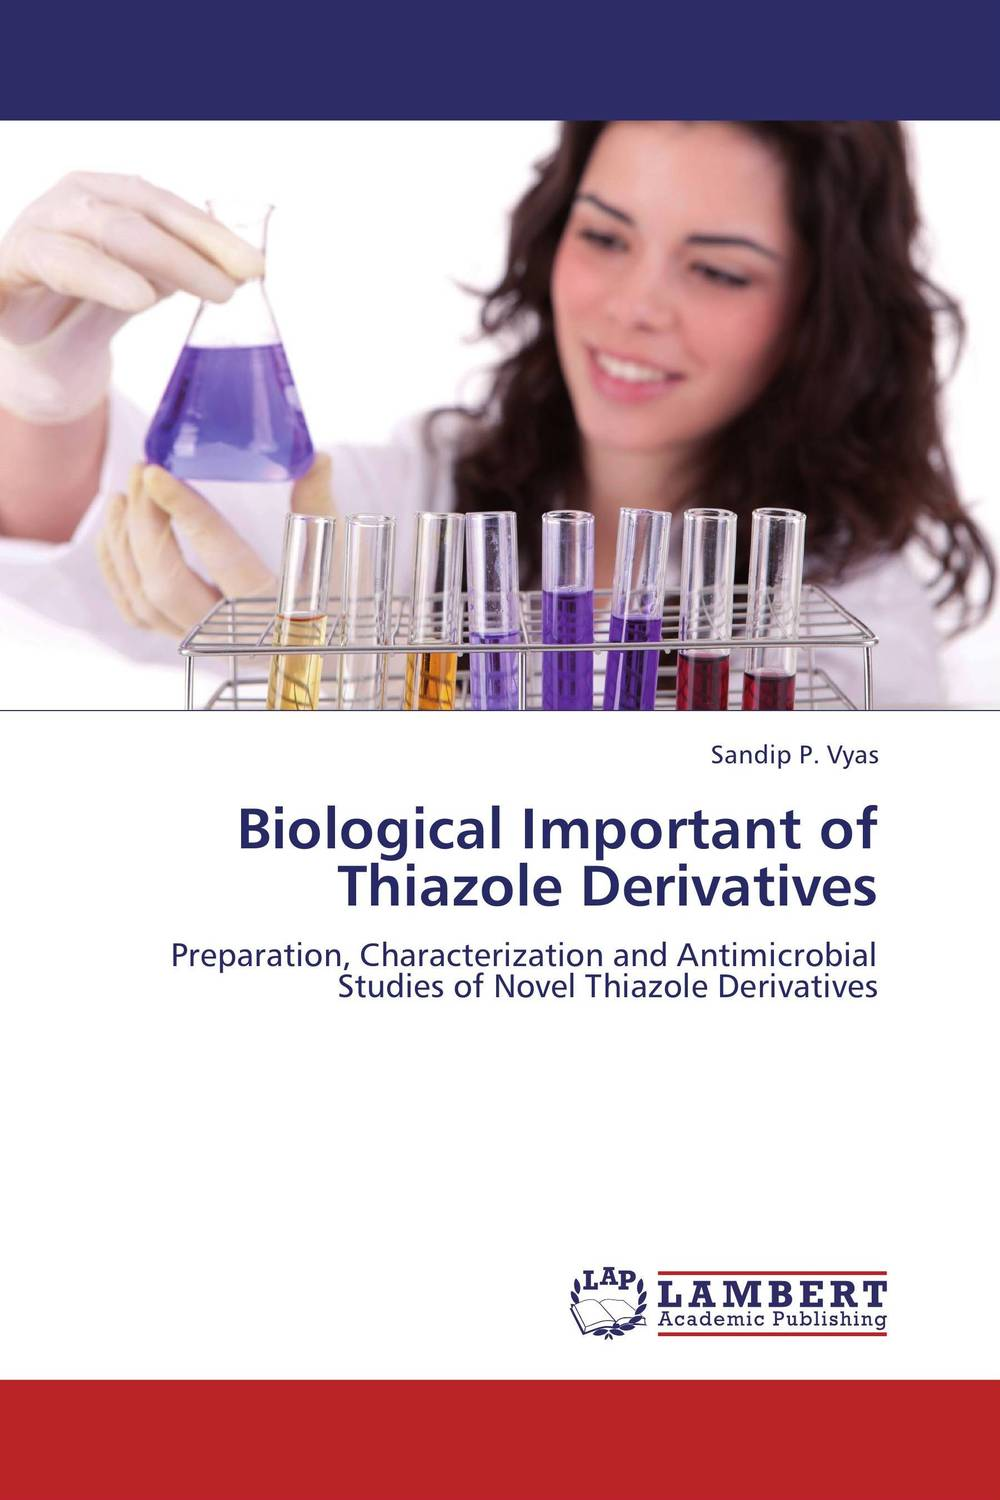 Biological Important of Thiazole Derivatives moorad choudhry fixed income securities and derivatives handbook